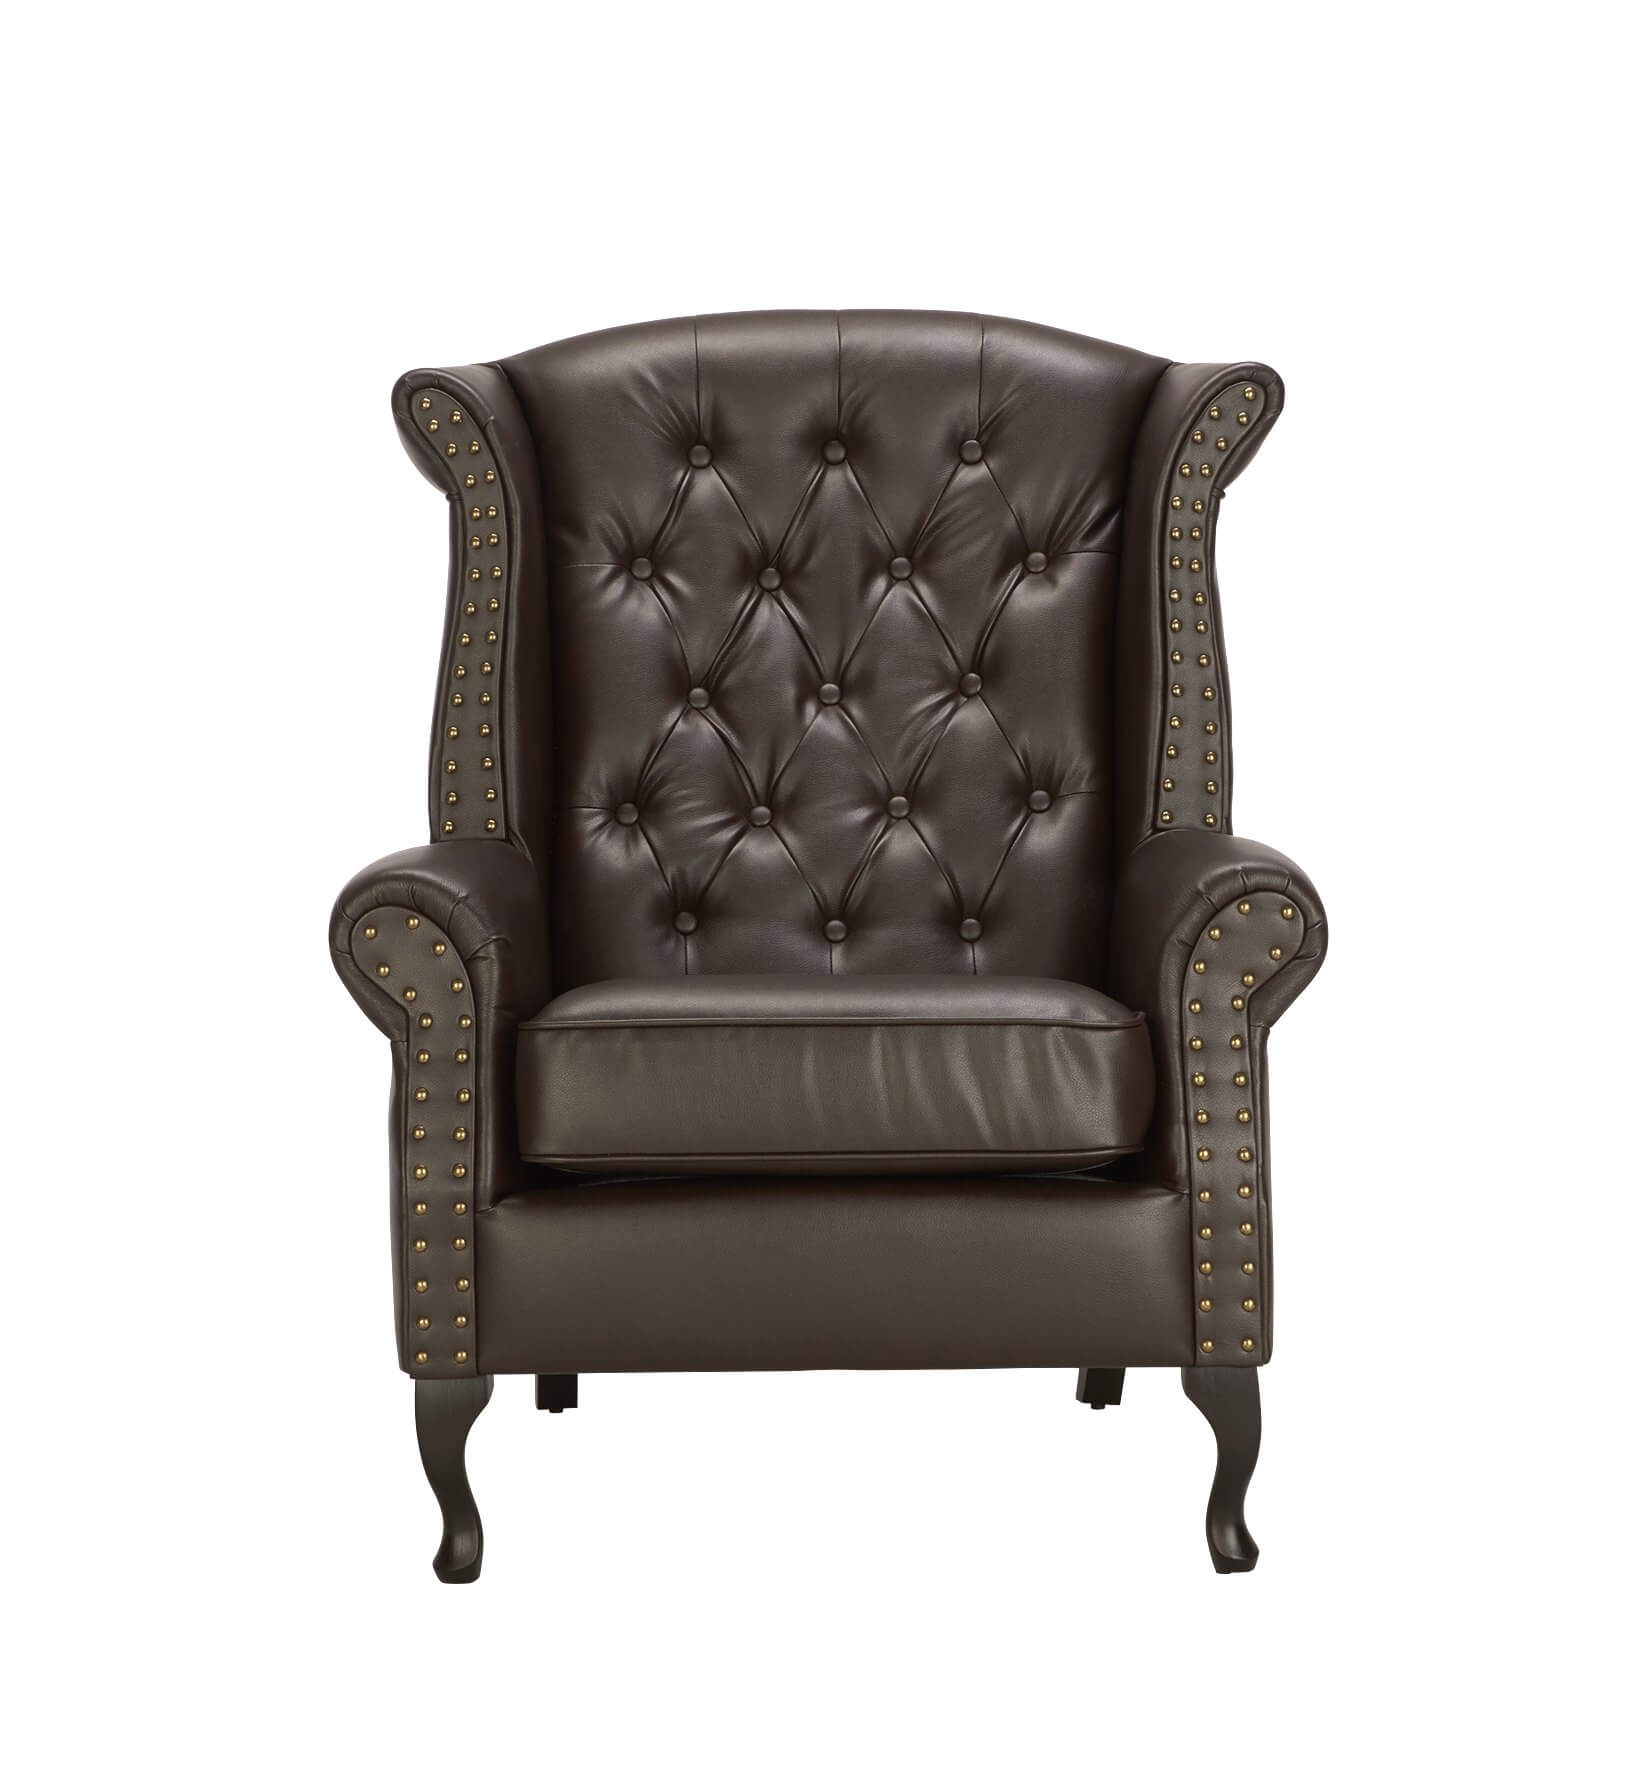 Brown Leather Chesterfield Wing Back Chair